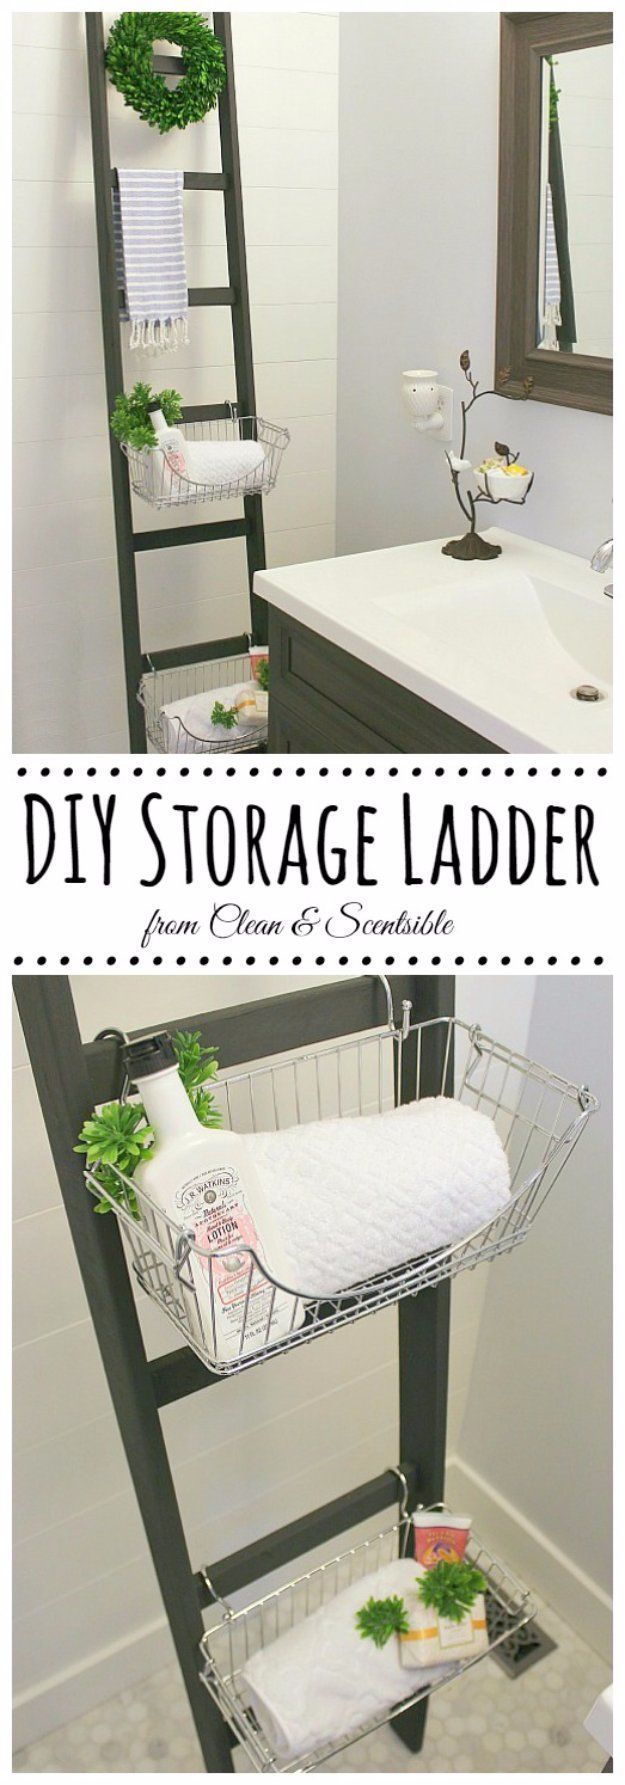 DIY Bathroom Decor Ideas - DIY Bathroom Storage Ladder - Cool Do It Yourself